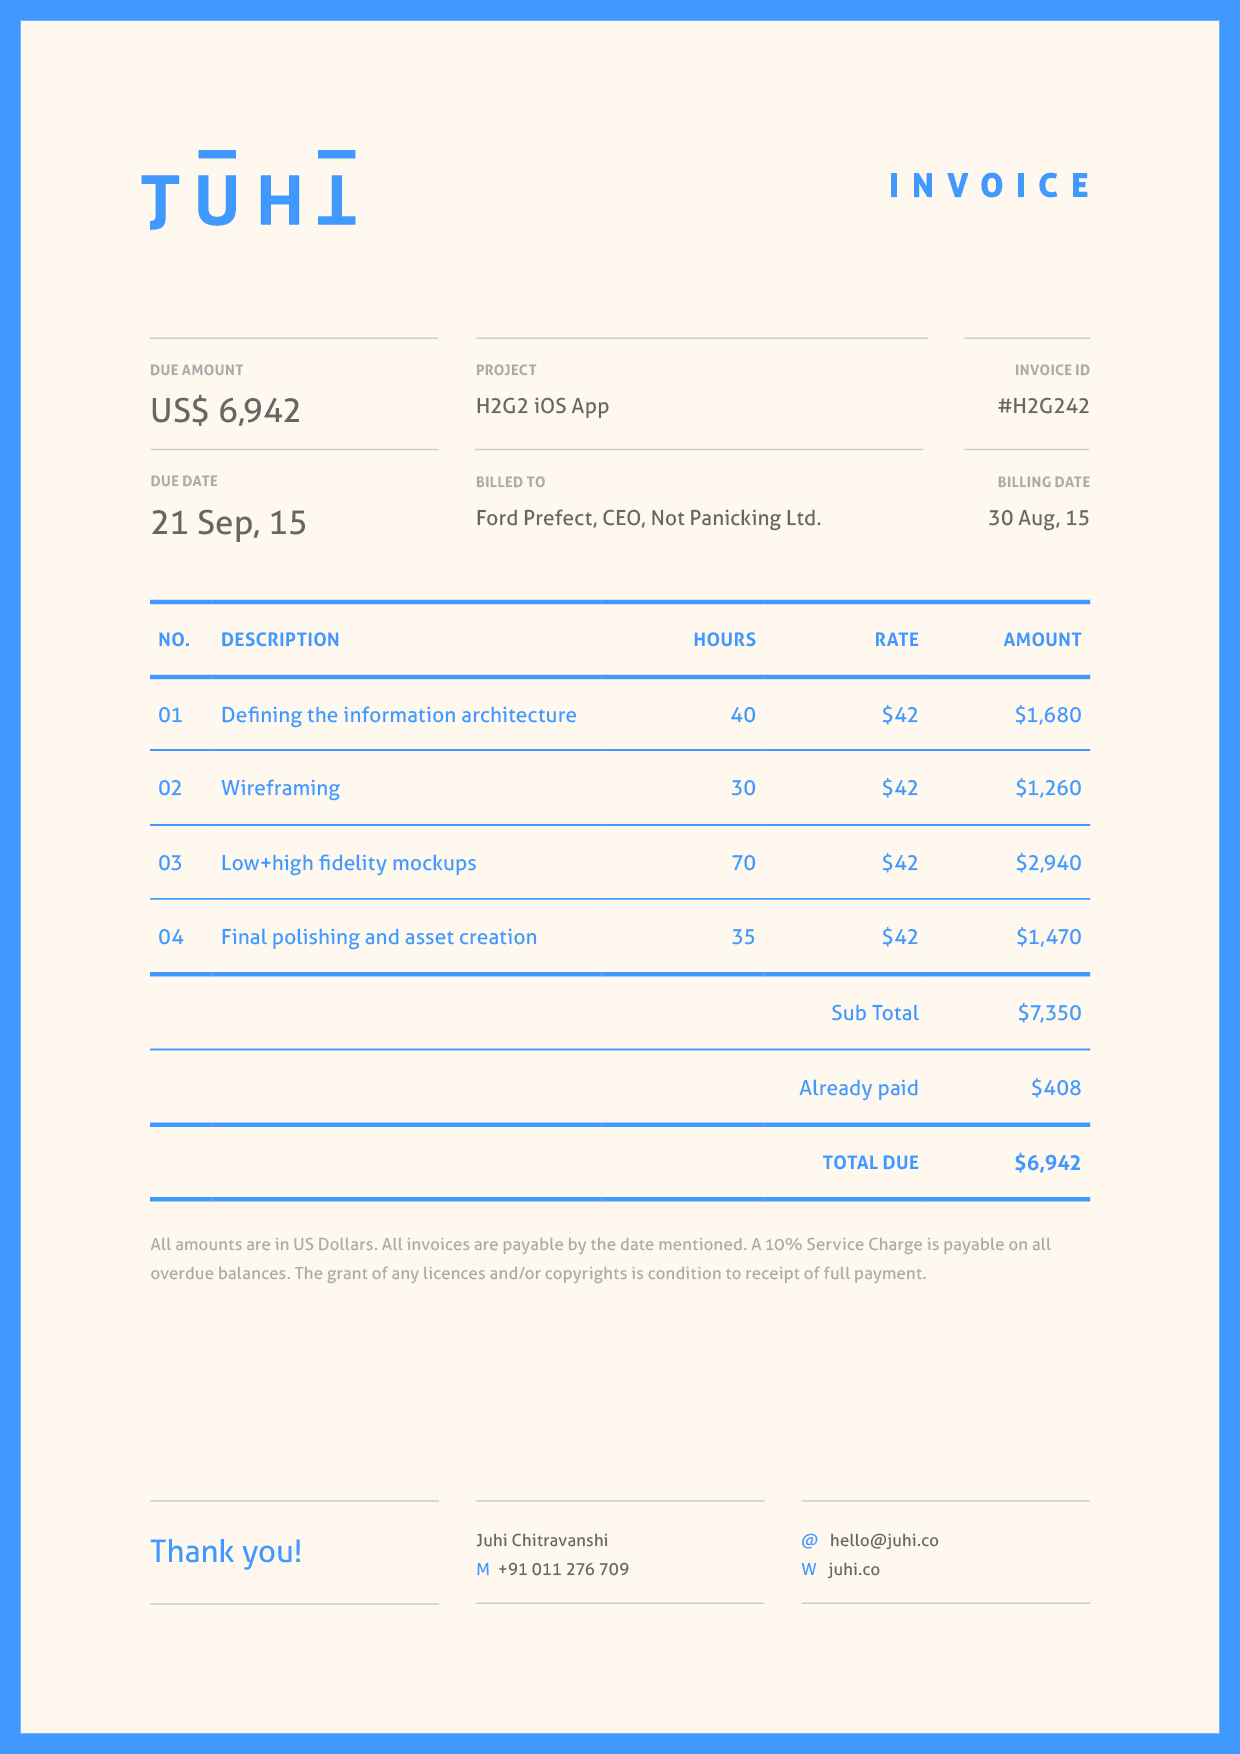 Usdgus  Terrific Dont Hold Back On Your Invoice  Inspiring Designs  With Fascinating Invoice By Juhi Chitravanshi Follow With Astounding Php Invoice Open Source Also Export Invoice Financing In Addition Excel Invoice Database And Invoice Fields As Well As Mazda Invoice Additionally  Honda Odyssey Invoice Price From Inspirationfeedcom With Usdgus  Fascinating Dont Hold Back On Your Invoice  Inspiring Designs  With Astounding Invoice By Juhi Chitravanshi Follow And Terrific Php Invoice Open Source Also Export Invoice Financing In Addition Excel Invoice Database From Inspirationfeedcom